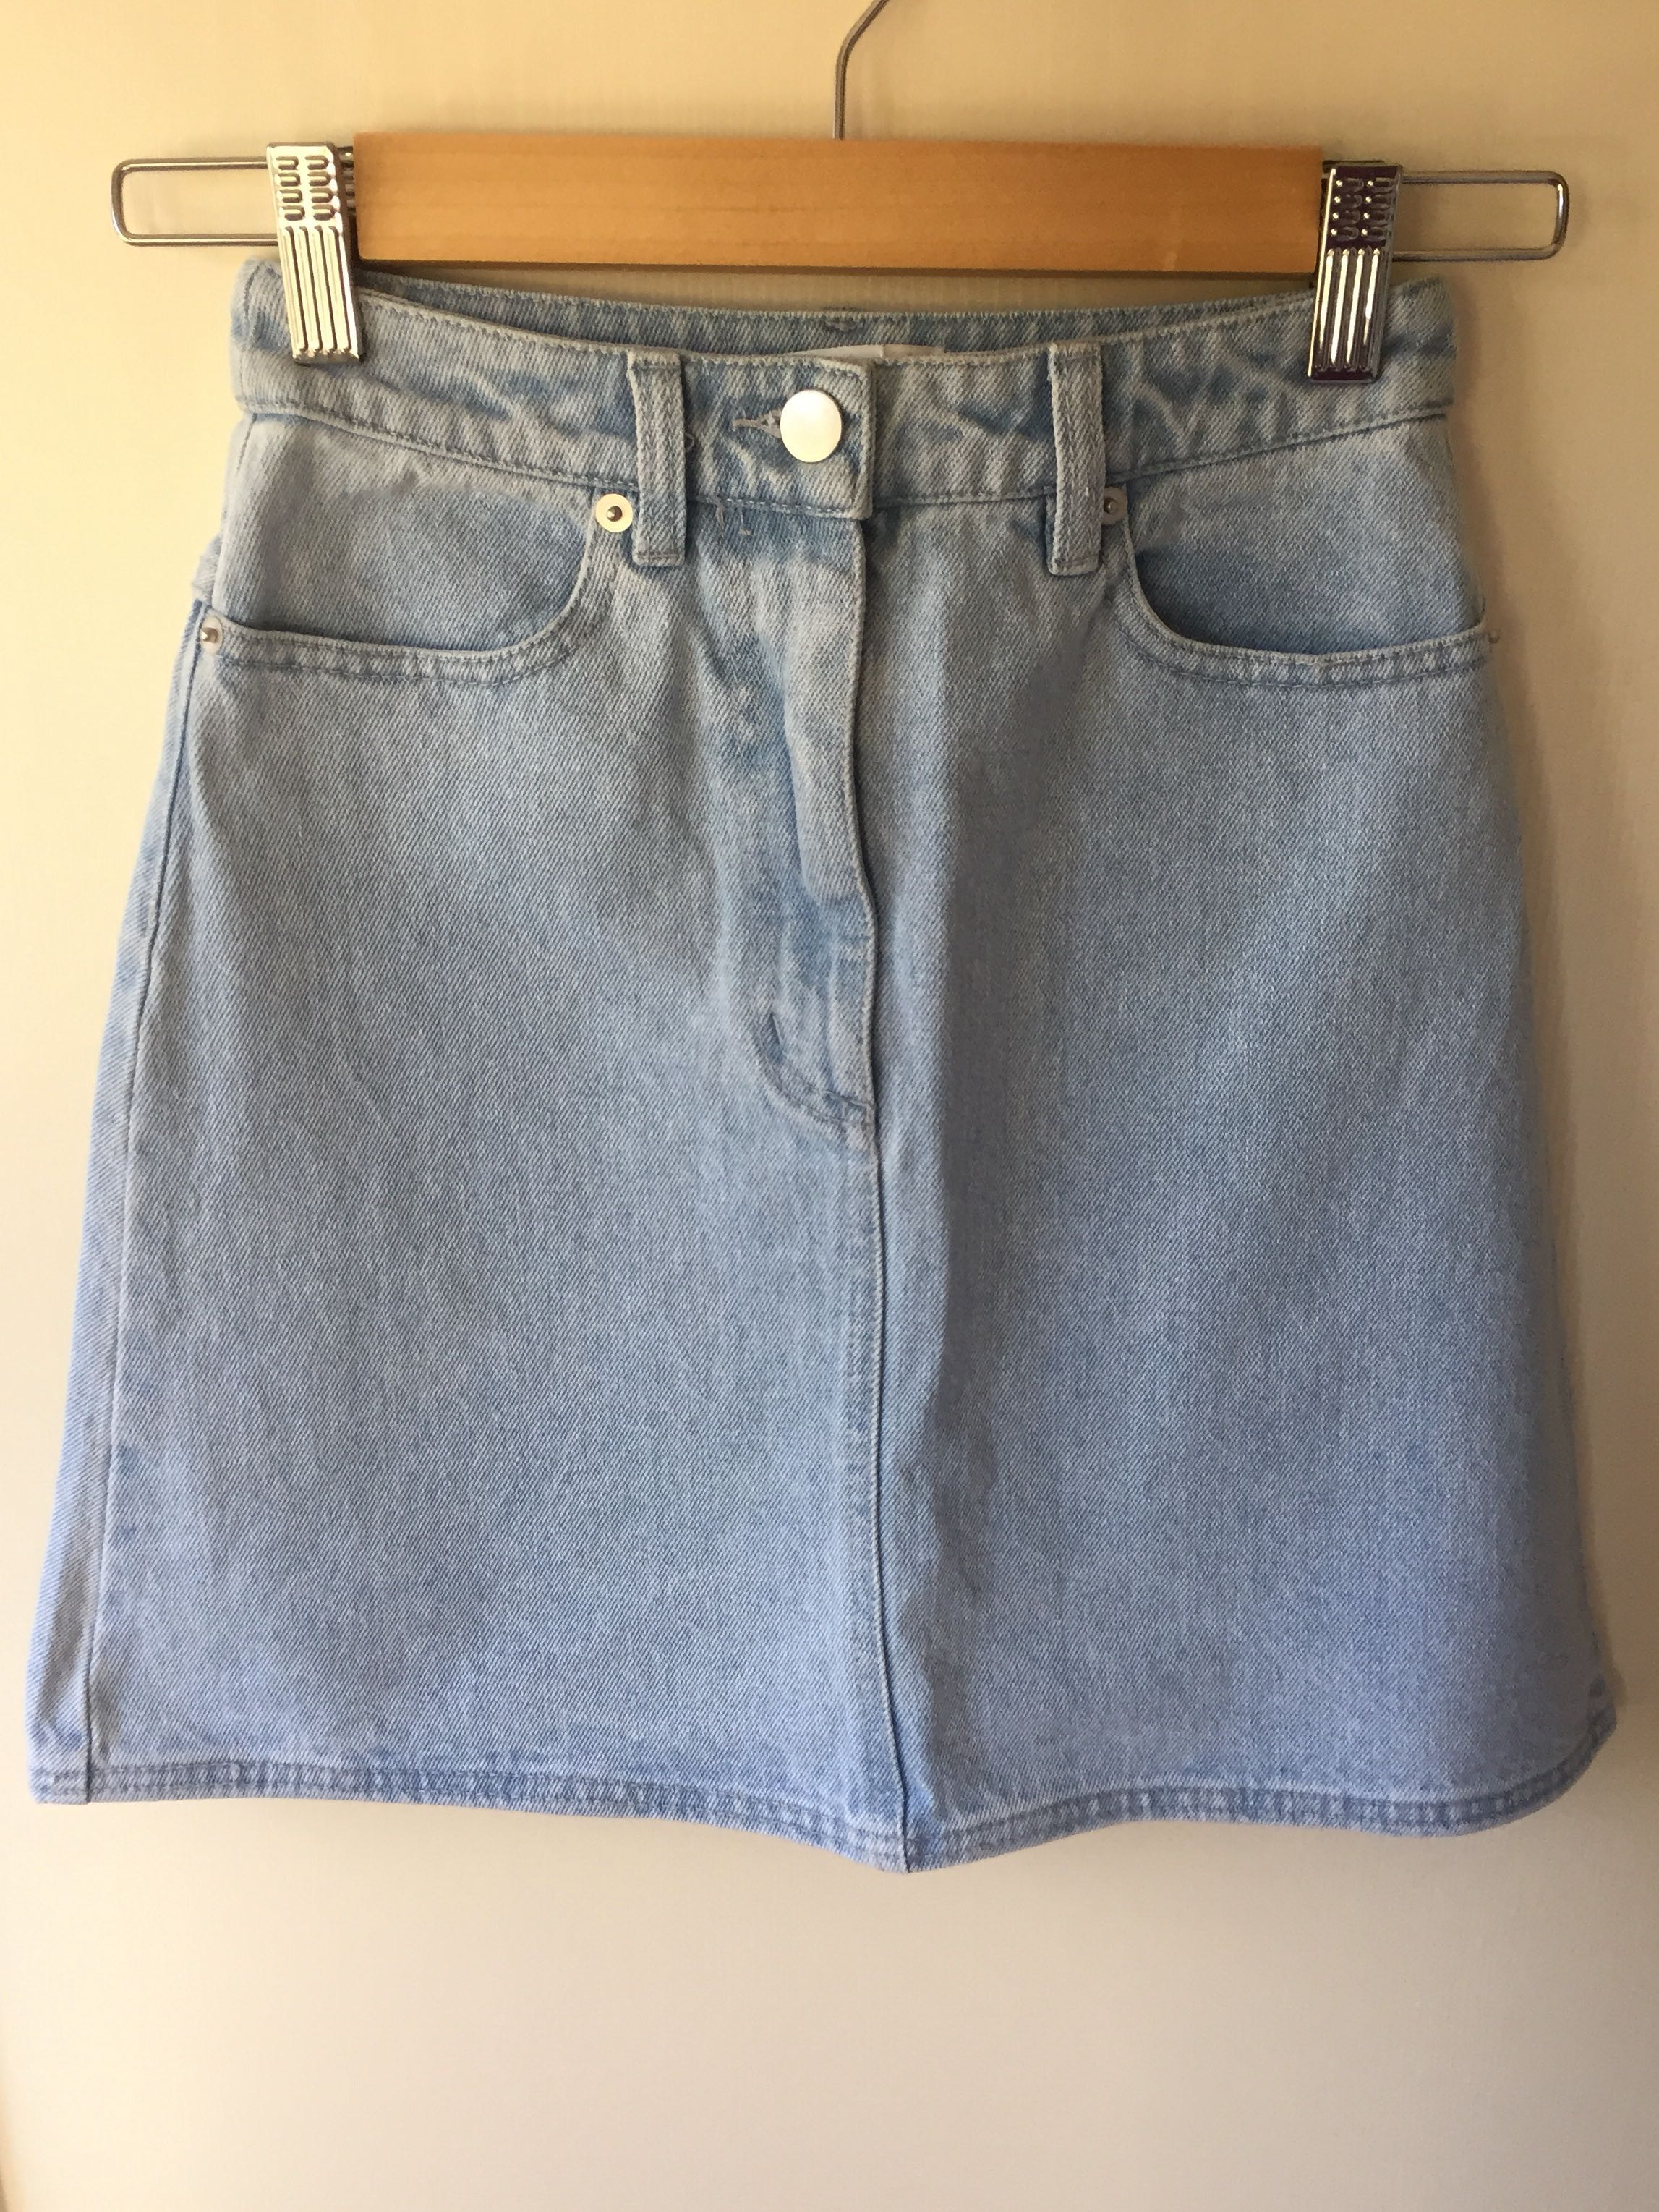 BNWT Kookai Denim Skirt Size 1 0fd40f479